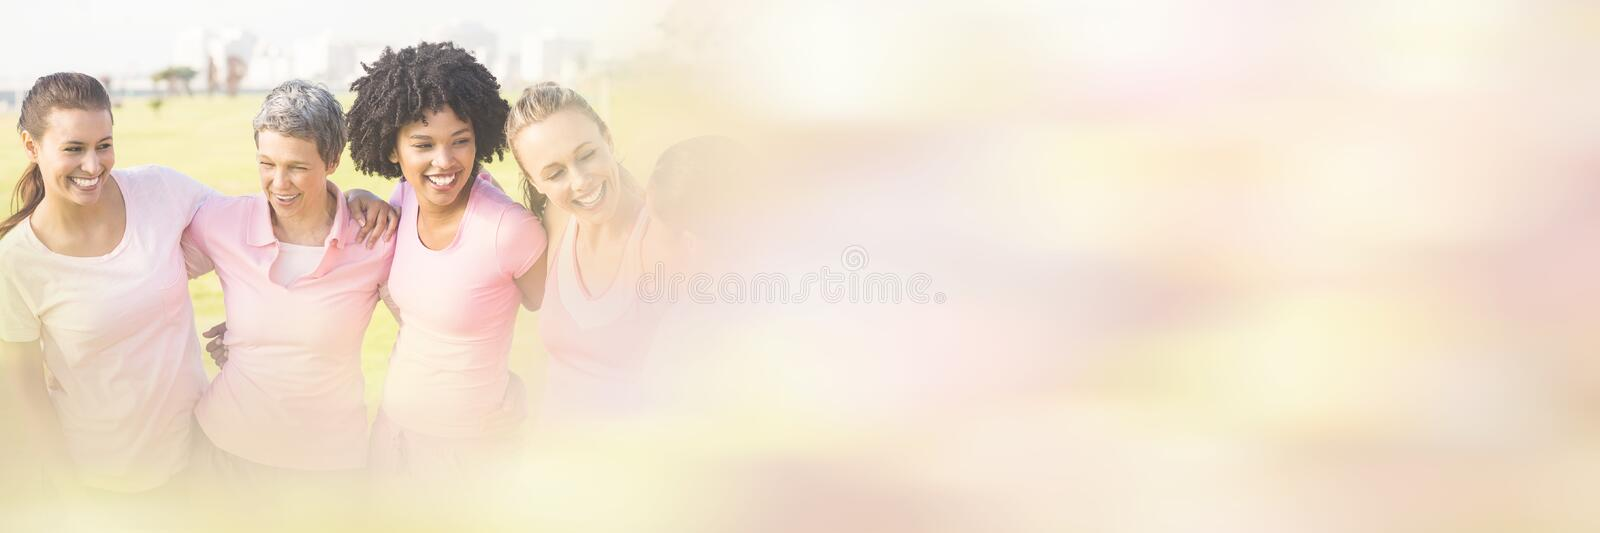 Laughing women wearing pink for breast cancer stock images